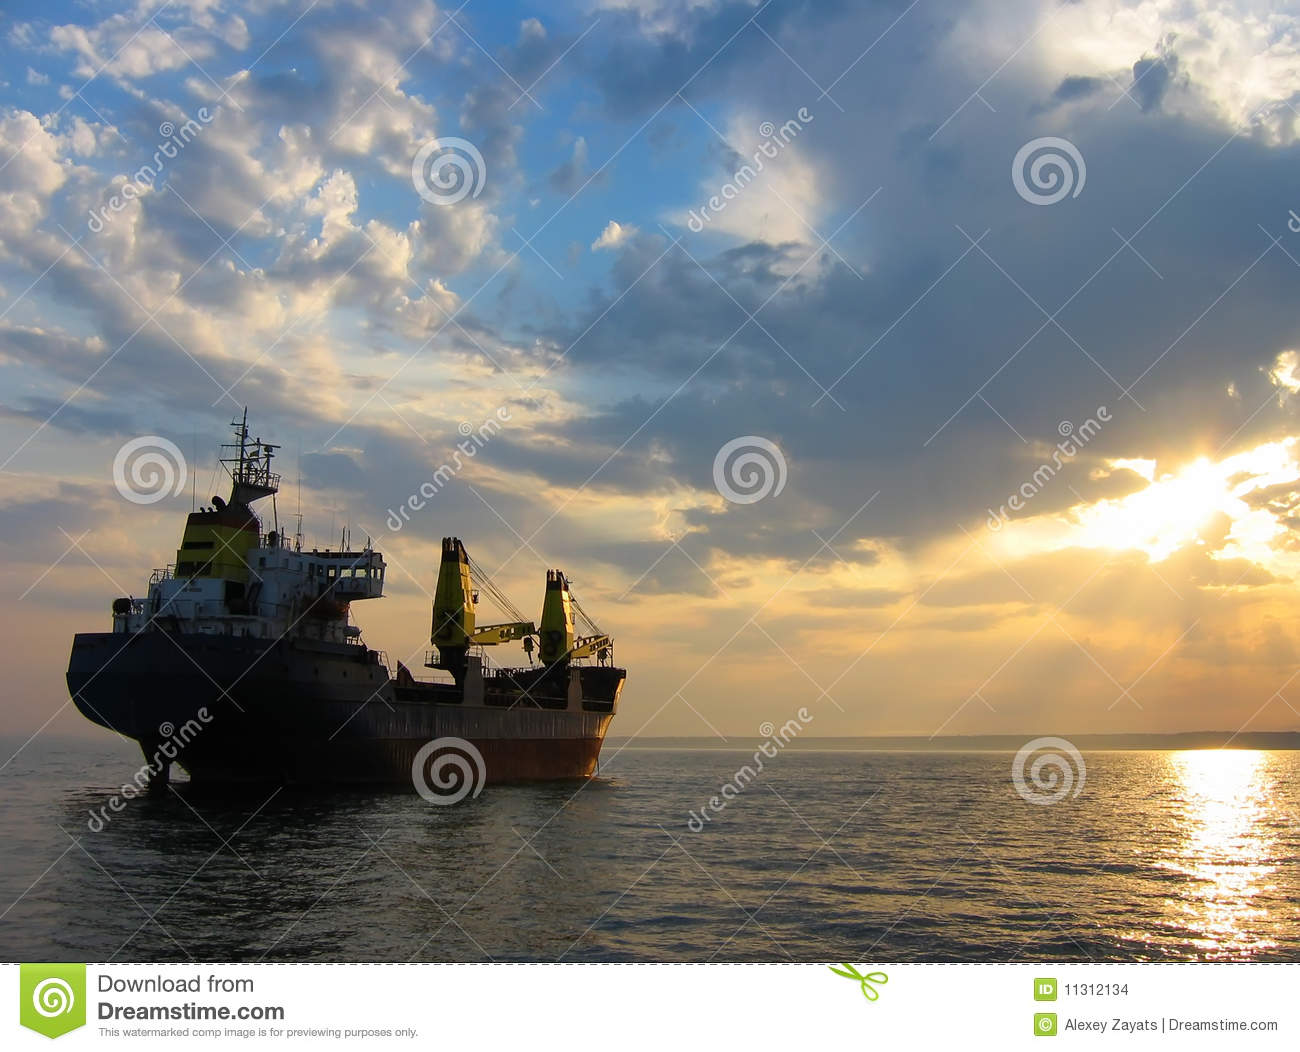 Dry Cargo Ship At Sunset